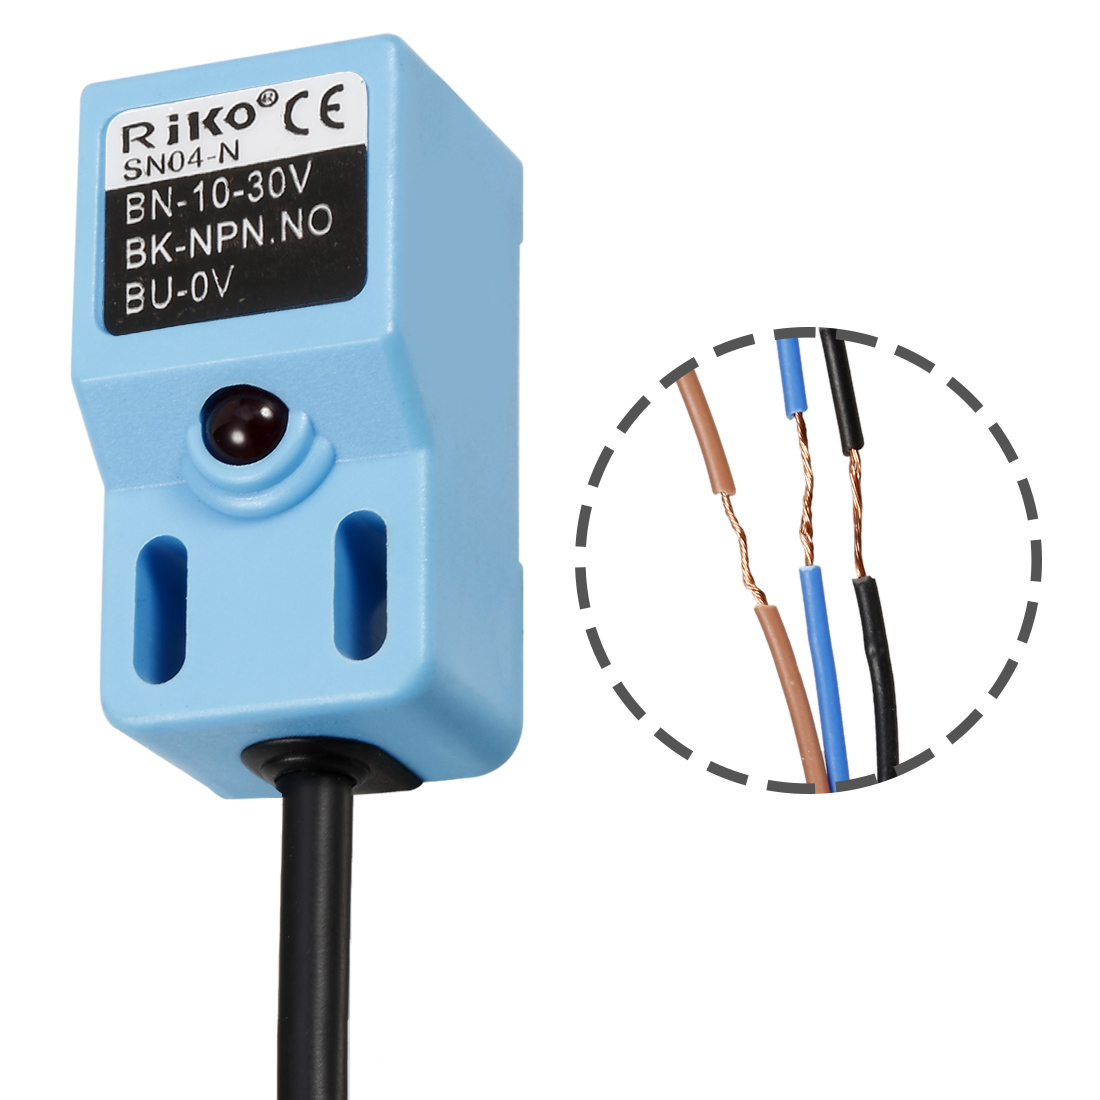 12m Cable Sn04 N 4mm Proximity Sensor Switch Detector Npn No Dc 3 3wire In This Case You Would Just Connect The Brown Wire 10 30v